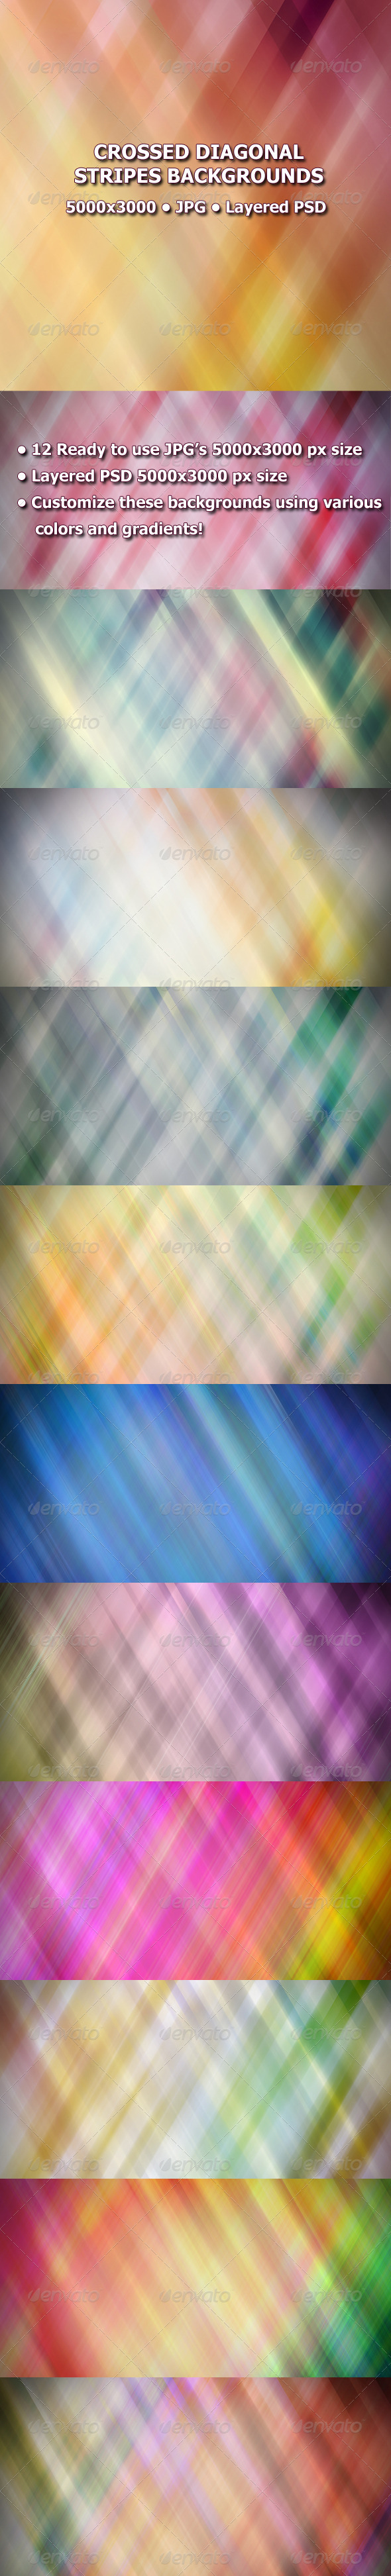 GraphicRiver Crosses Diagonal Stripes Backgrounds 7928526